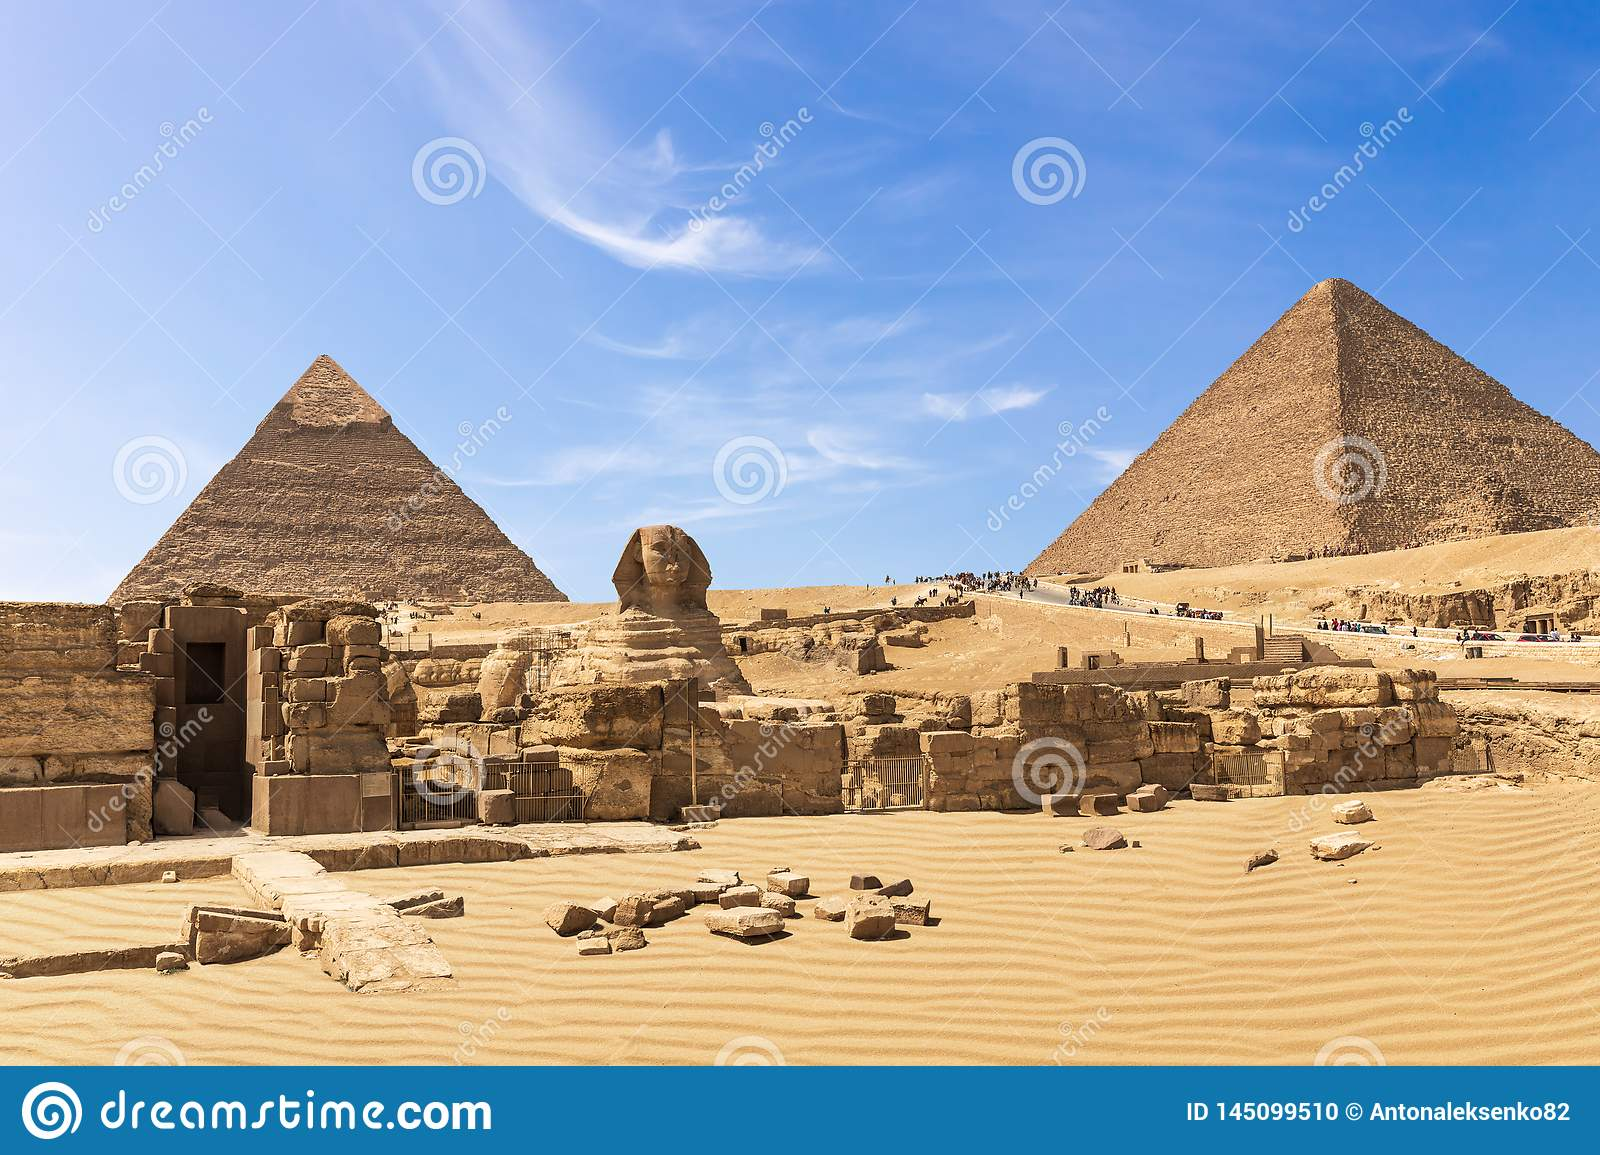 The Great Pyramids of Giza complex: the Sphinx, the Pyramid of Chephren, the temple and the Pyramid of Cheops, Egypt